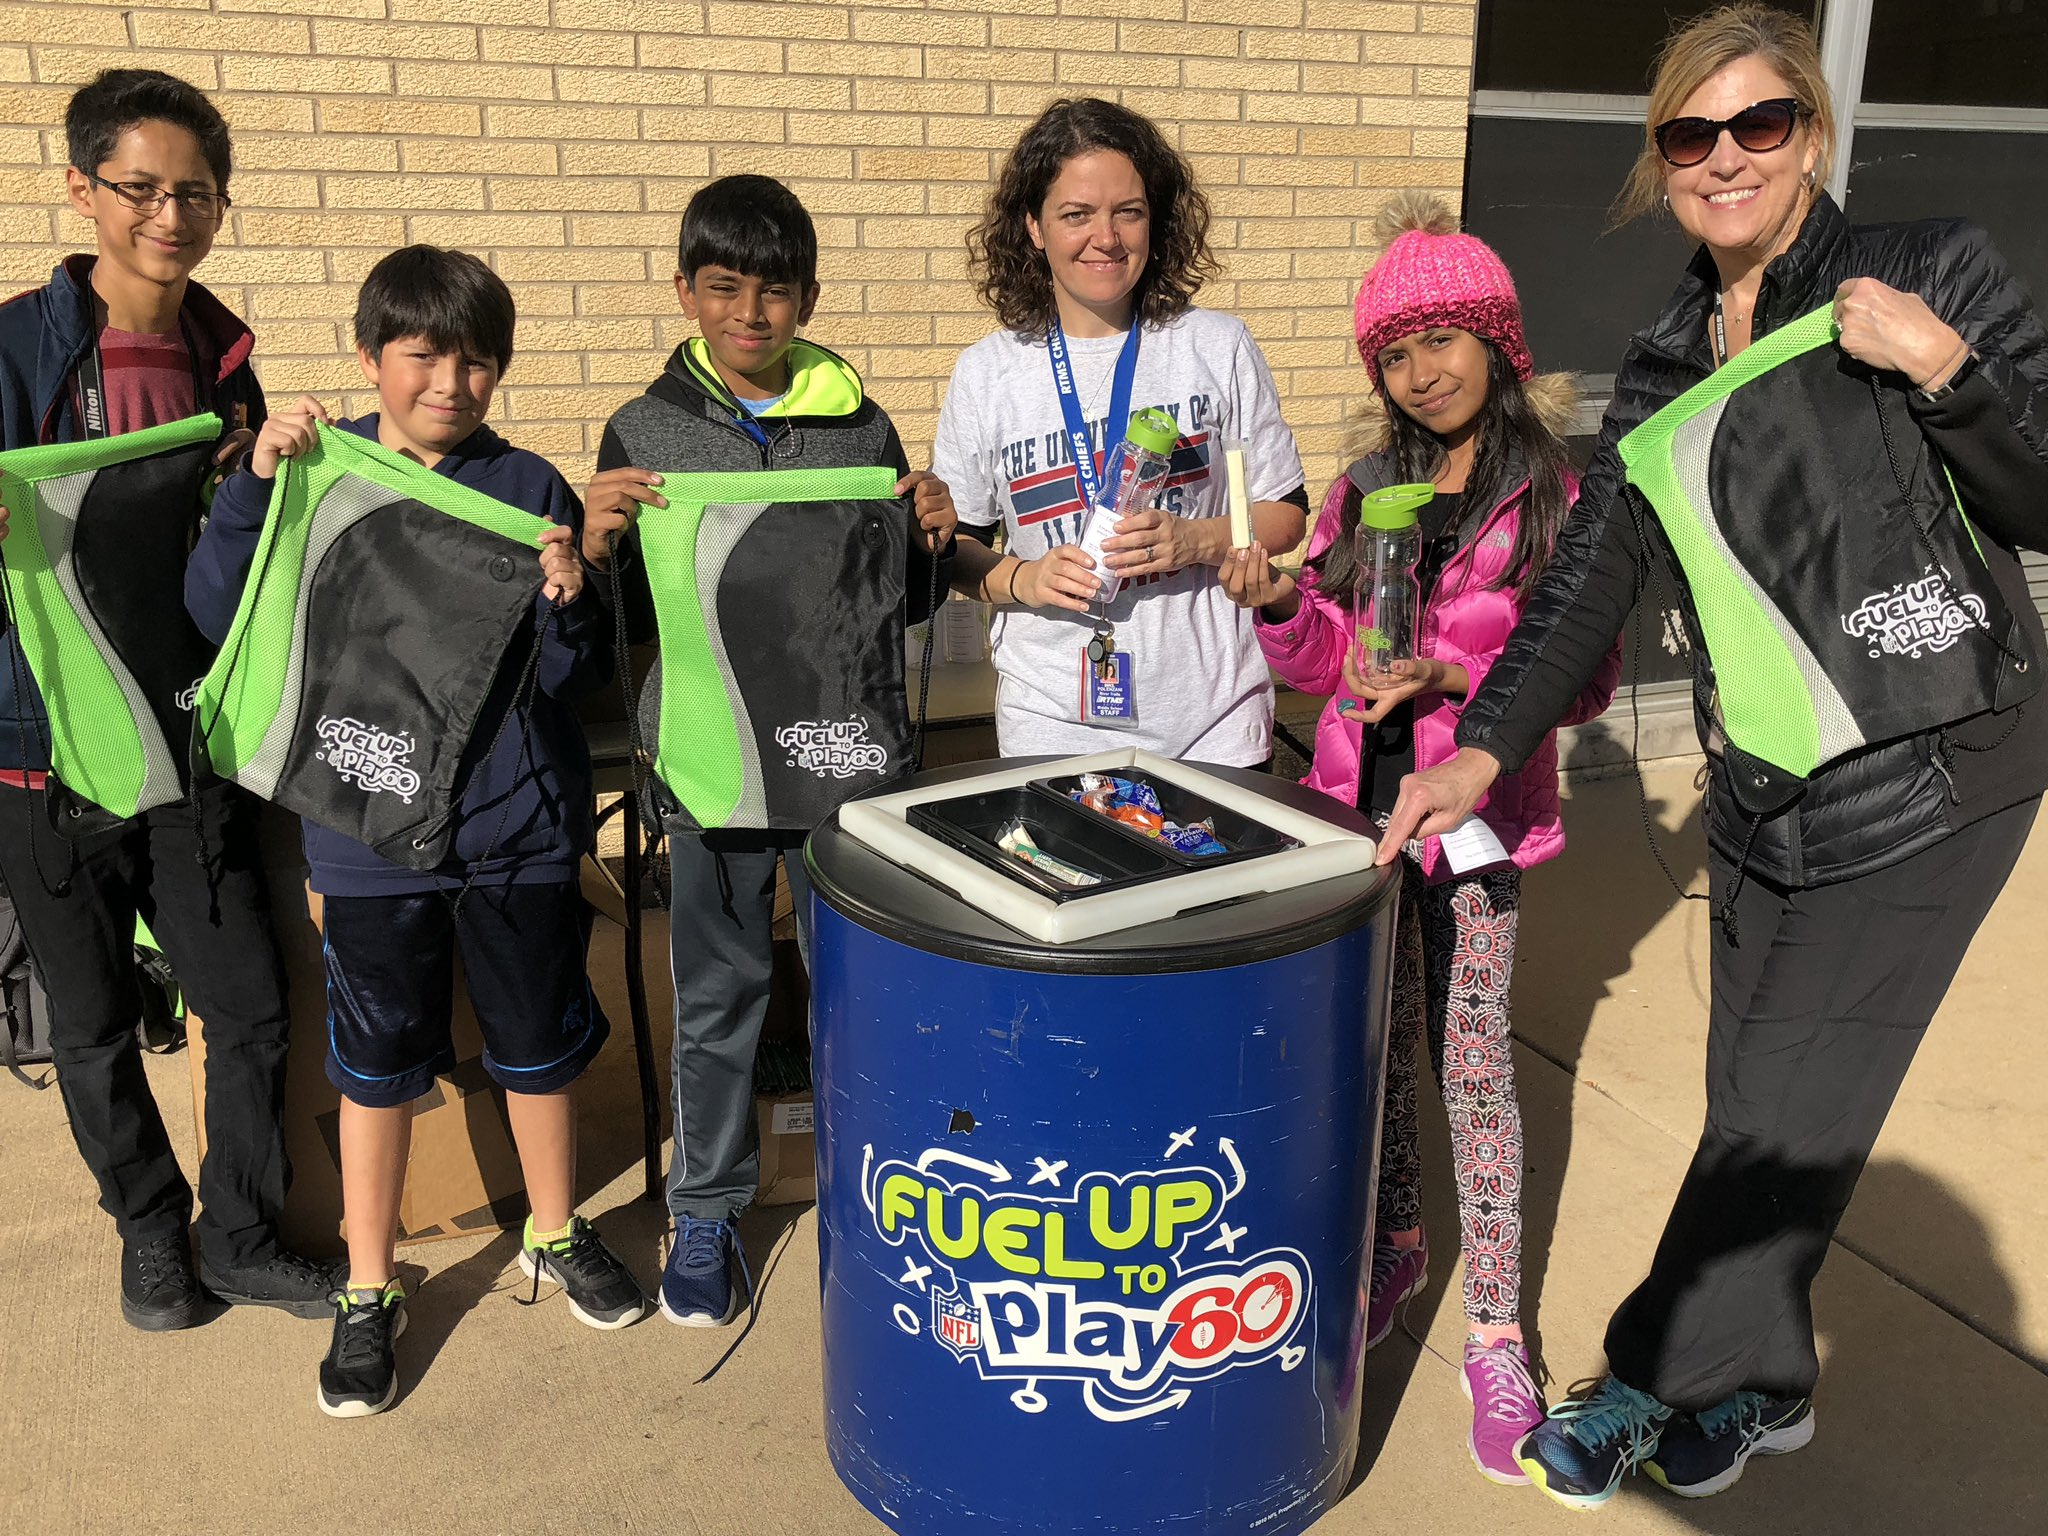 Fuel up to play 60 prizes for carnival games